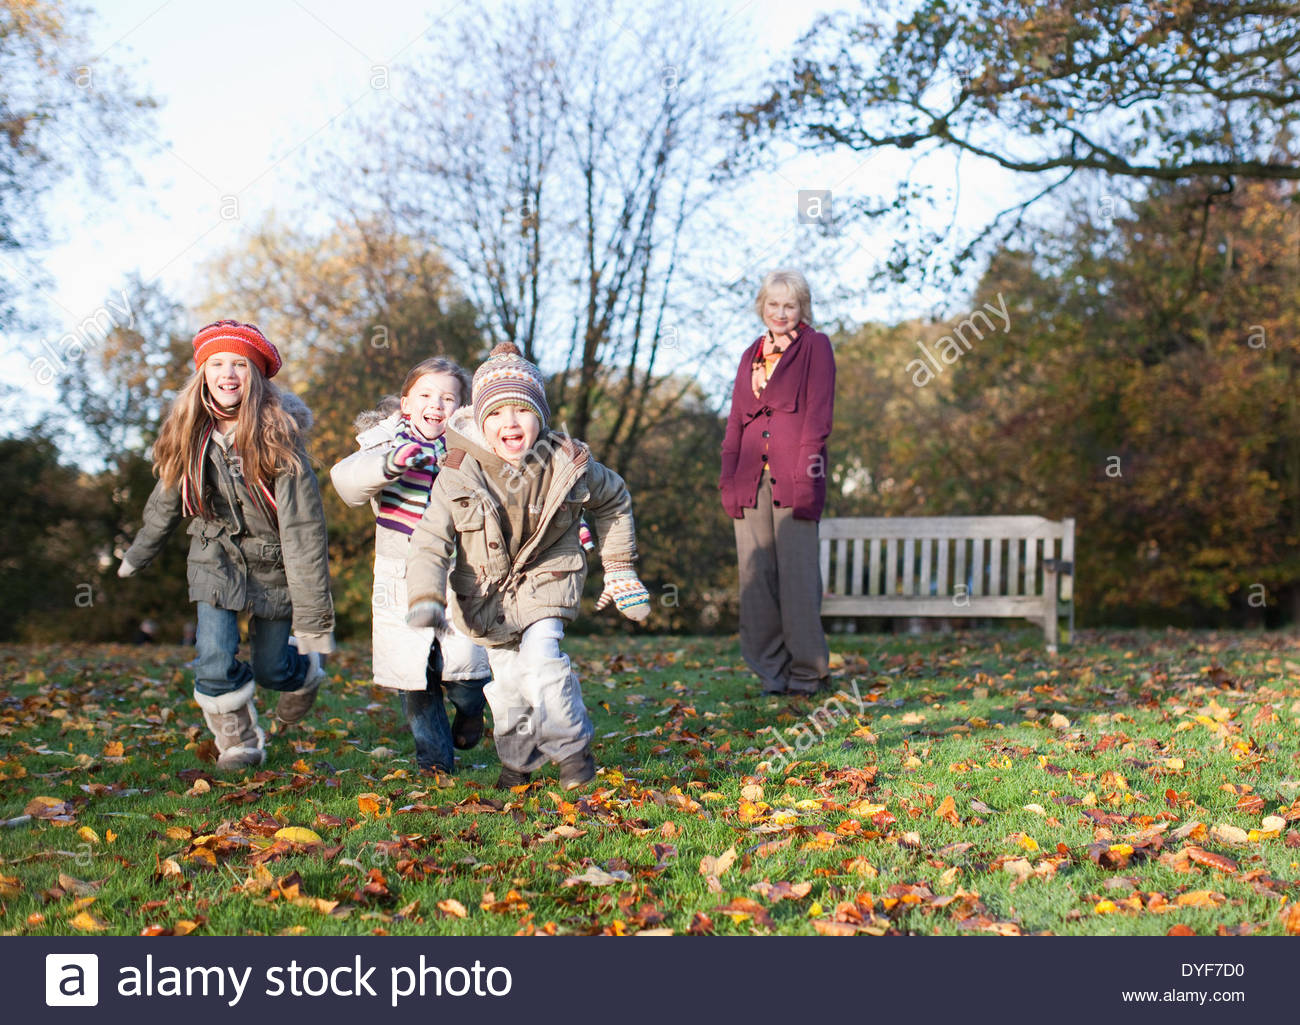 Grandmother playing with grandchildren outdoors - Stock Image